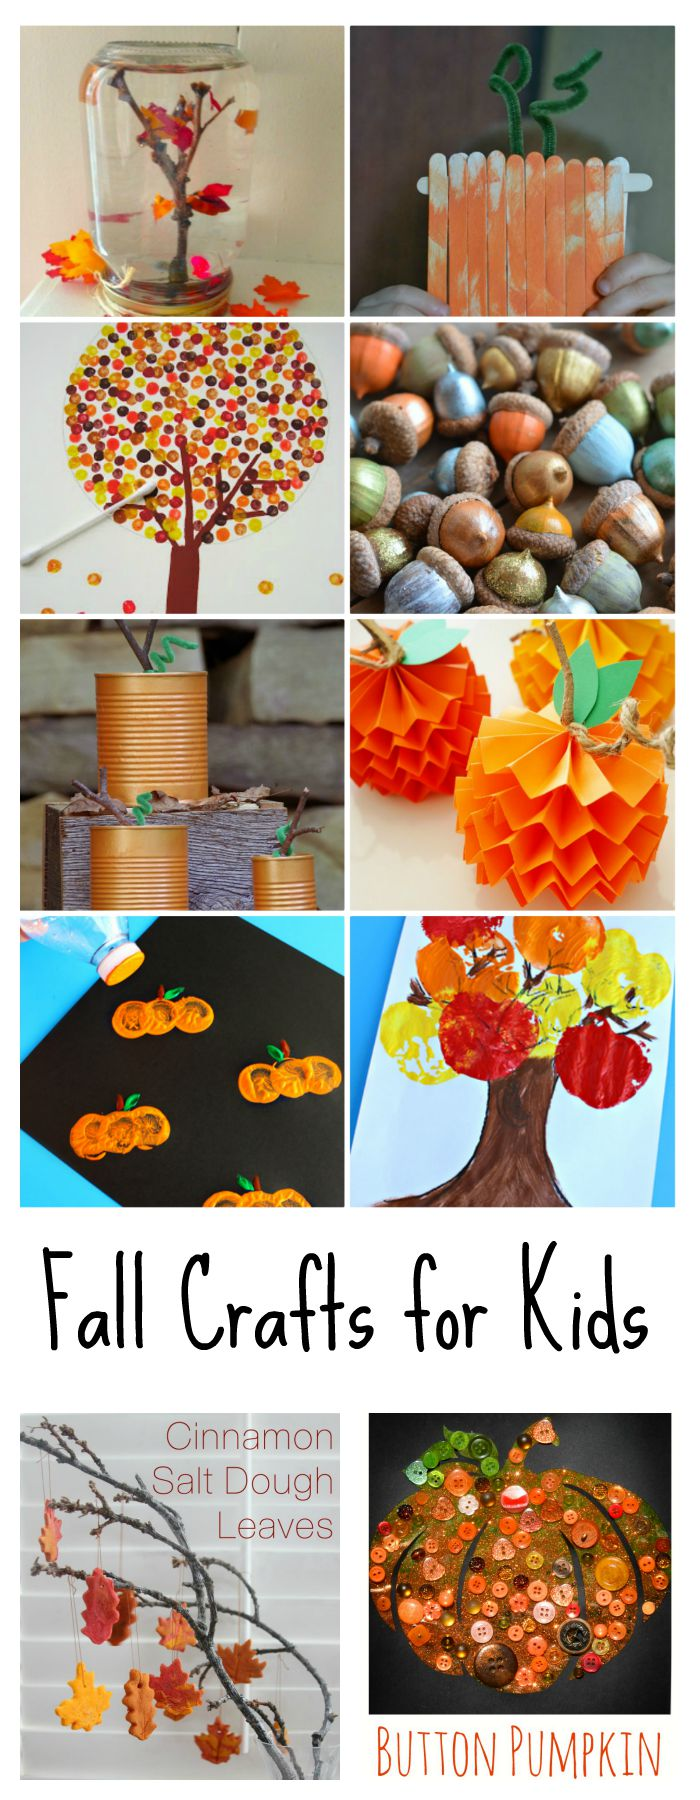 Fall-Crafts-for-Kids-2